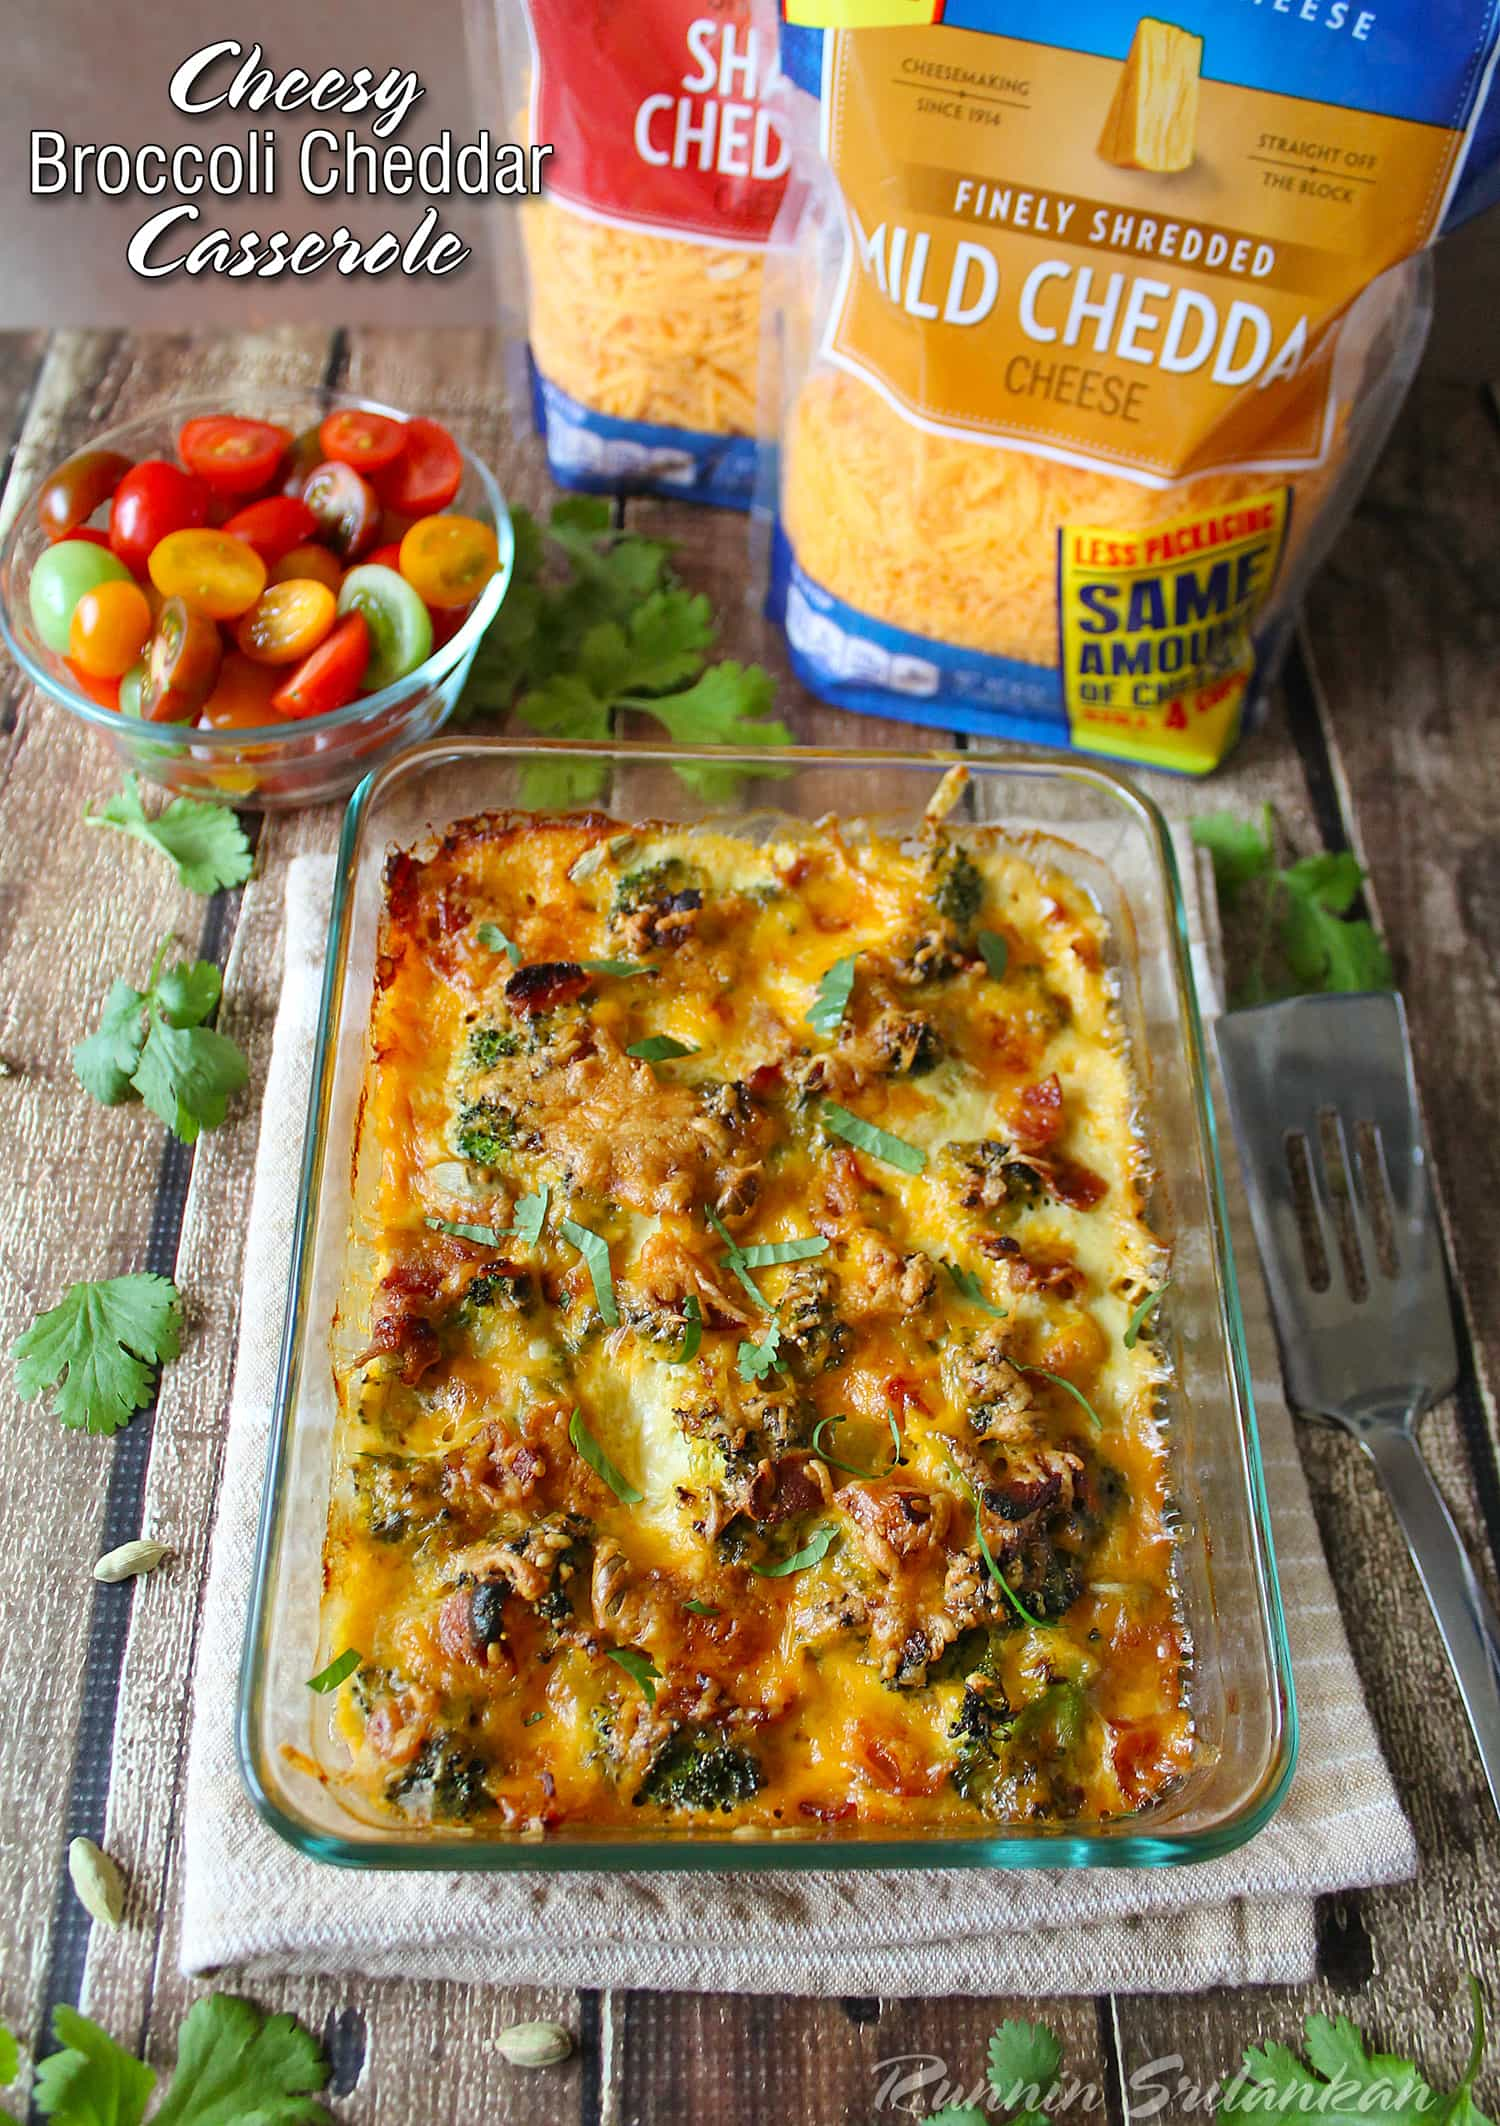 This Cheesy bacon broccoli casserole is perfect for lazy, cold weekend mornings! A few moments of prepping and voila - you have a hearty and tasty casserole!